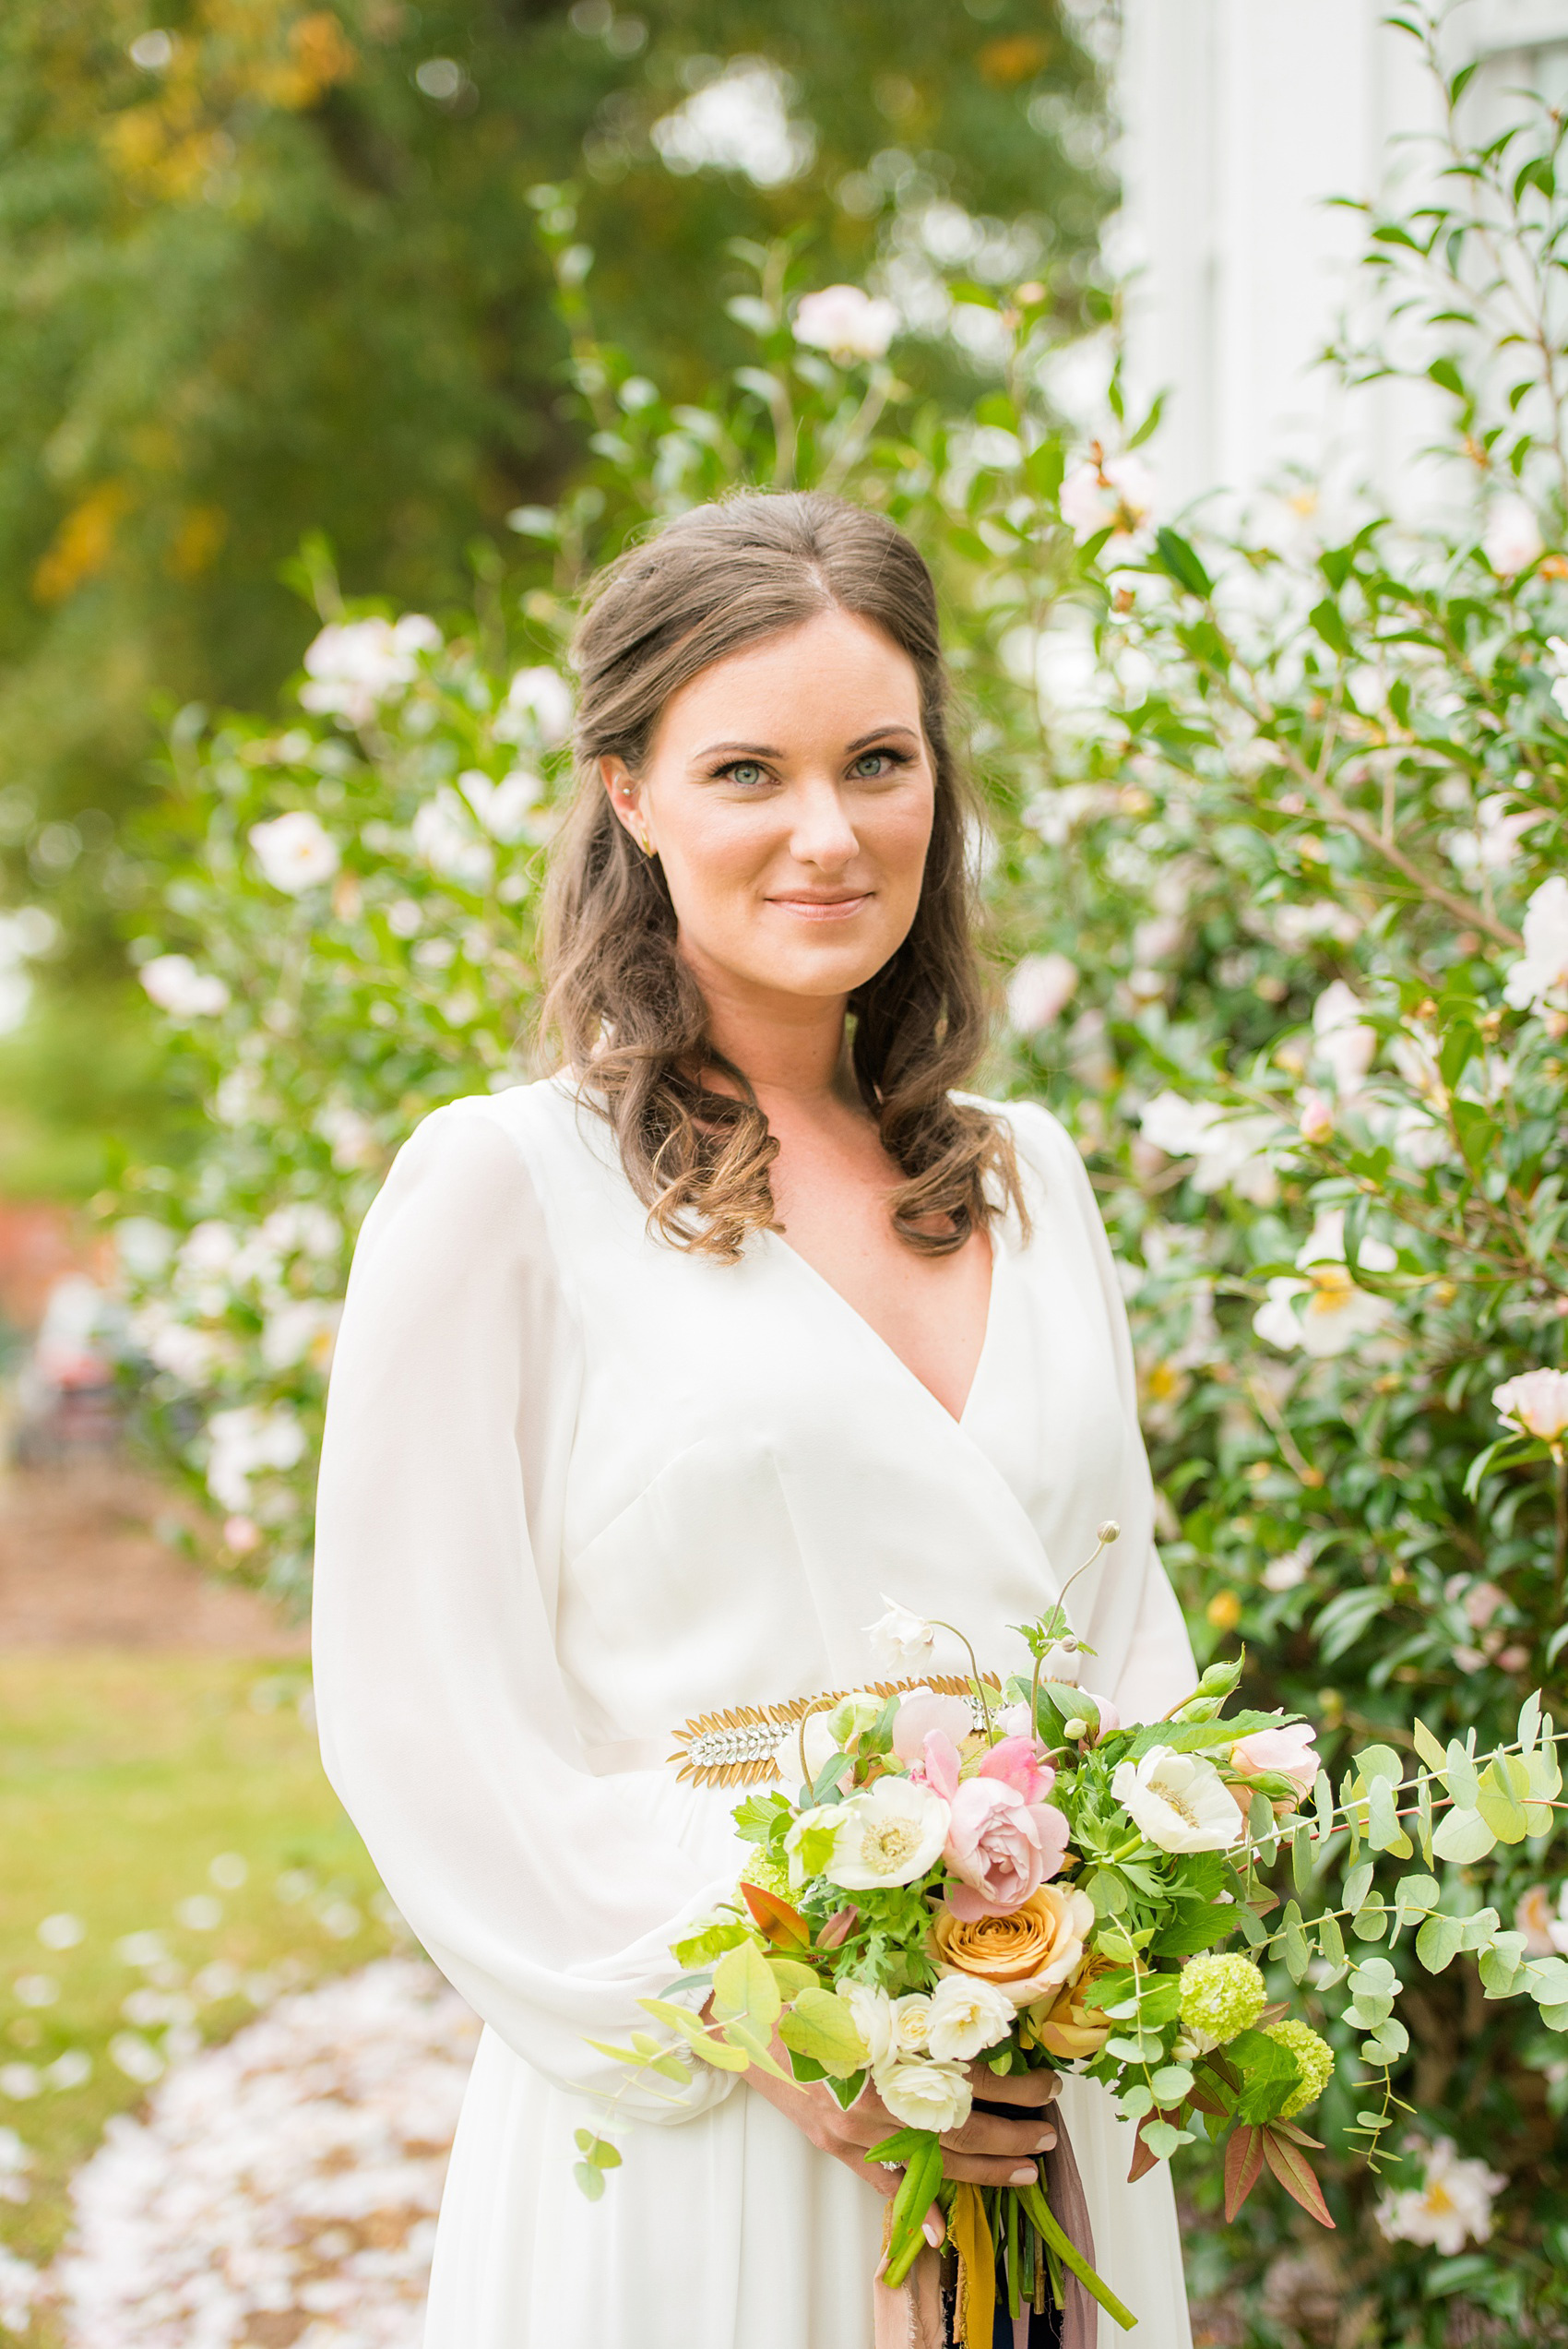 Mikkel Paige Photography photos from a wedding at Leslie-Alford Mims House in North Carolina. Portrait photo of the bride in her long-sleeve, white chiffon gown from BHLDN and fall flowers with long, autumn ribbons by Caroline Ruth Designs for a Mad Dash Wedding.